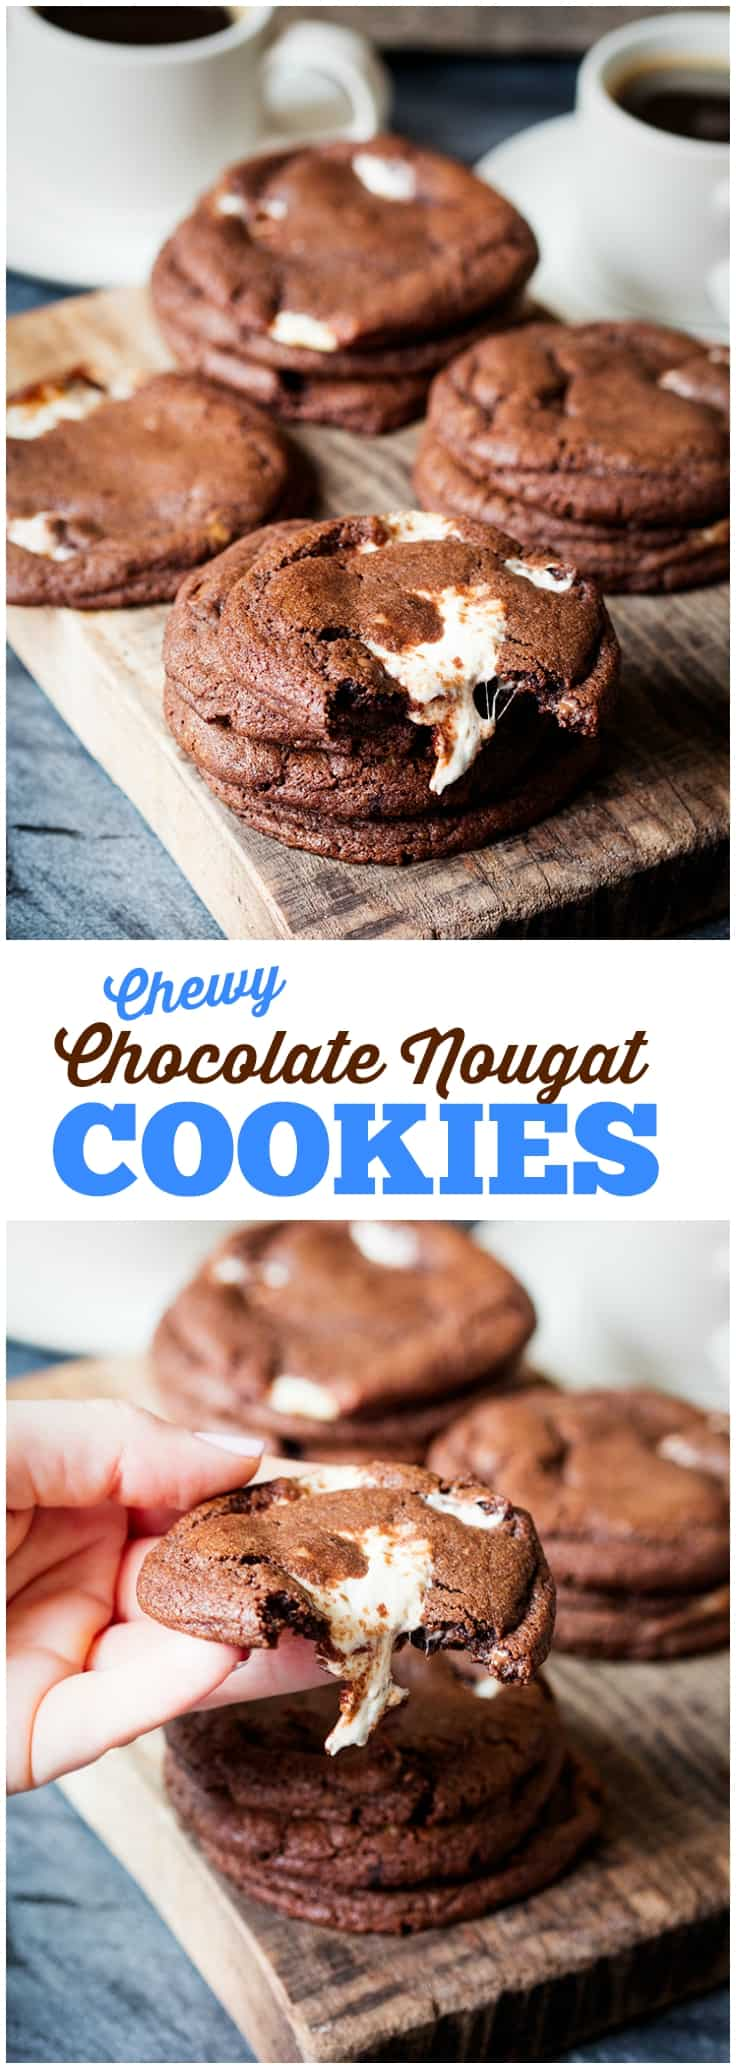 Chewy Chocolate Nougat Cookies - Simply Stacie